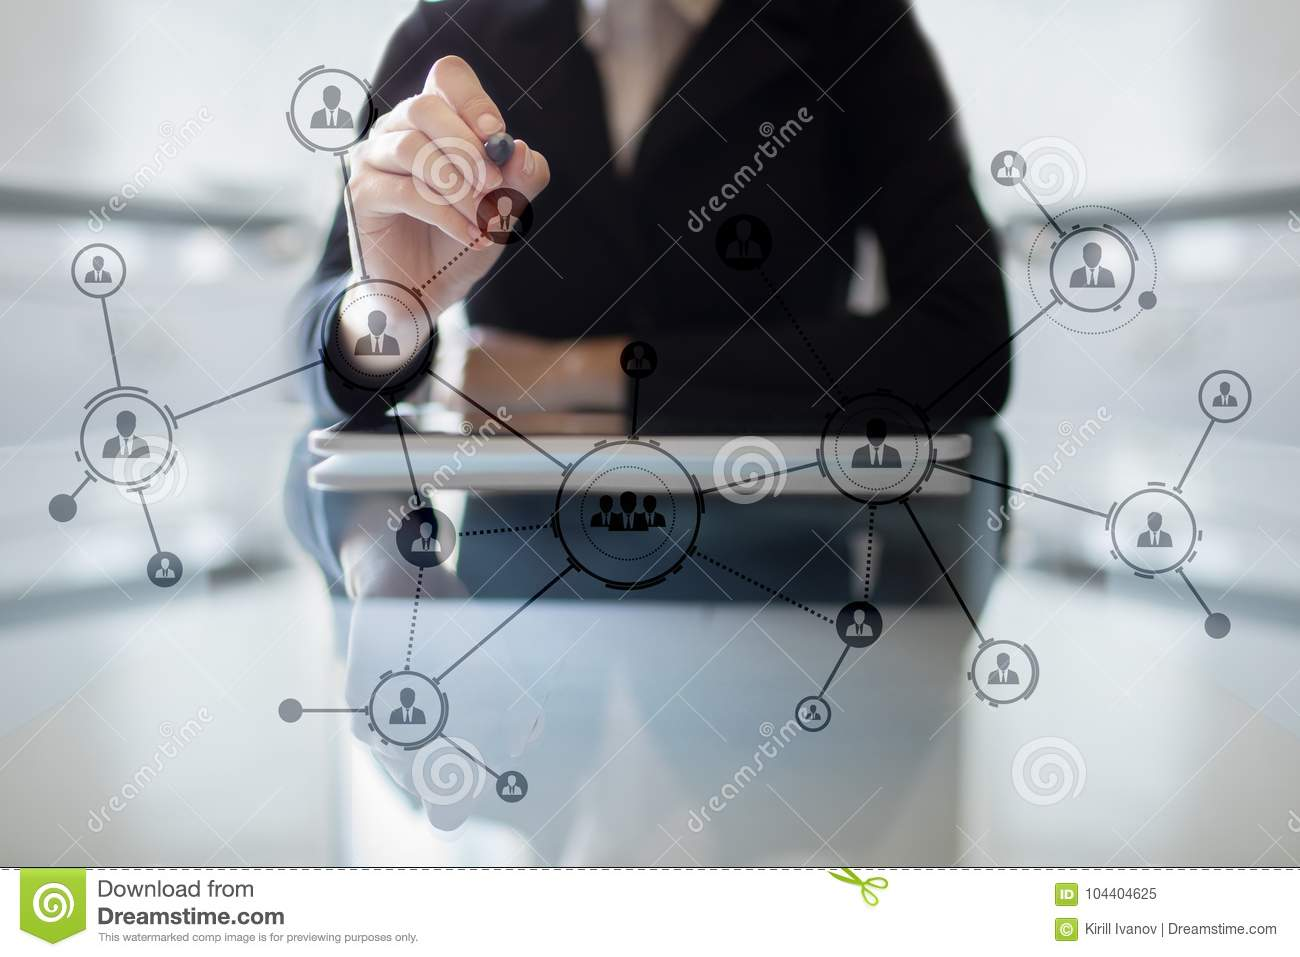 Organisation structure. People`s social network. Business and technology concept